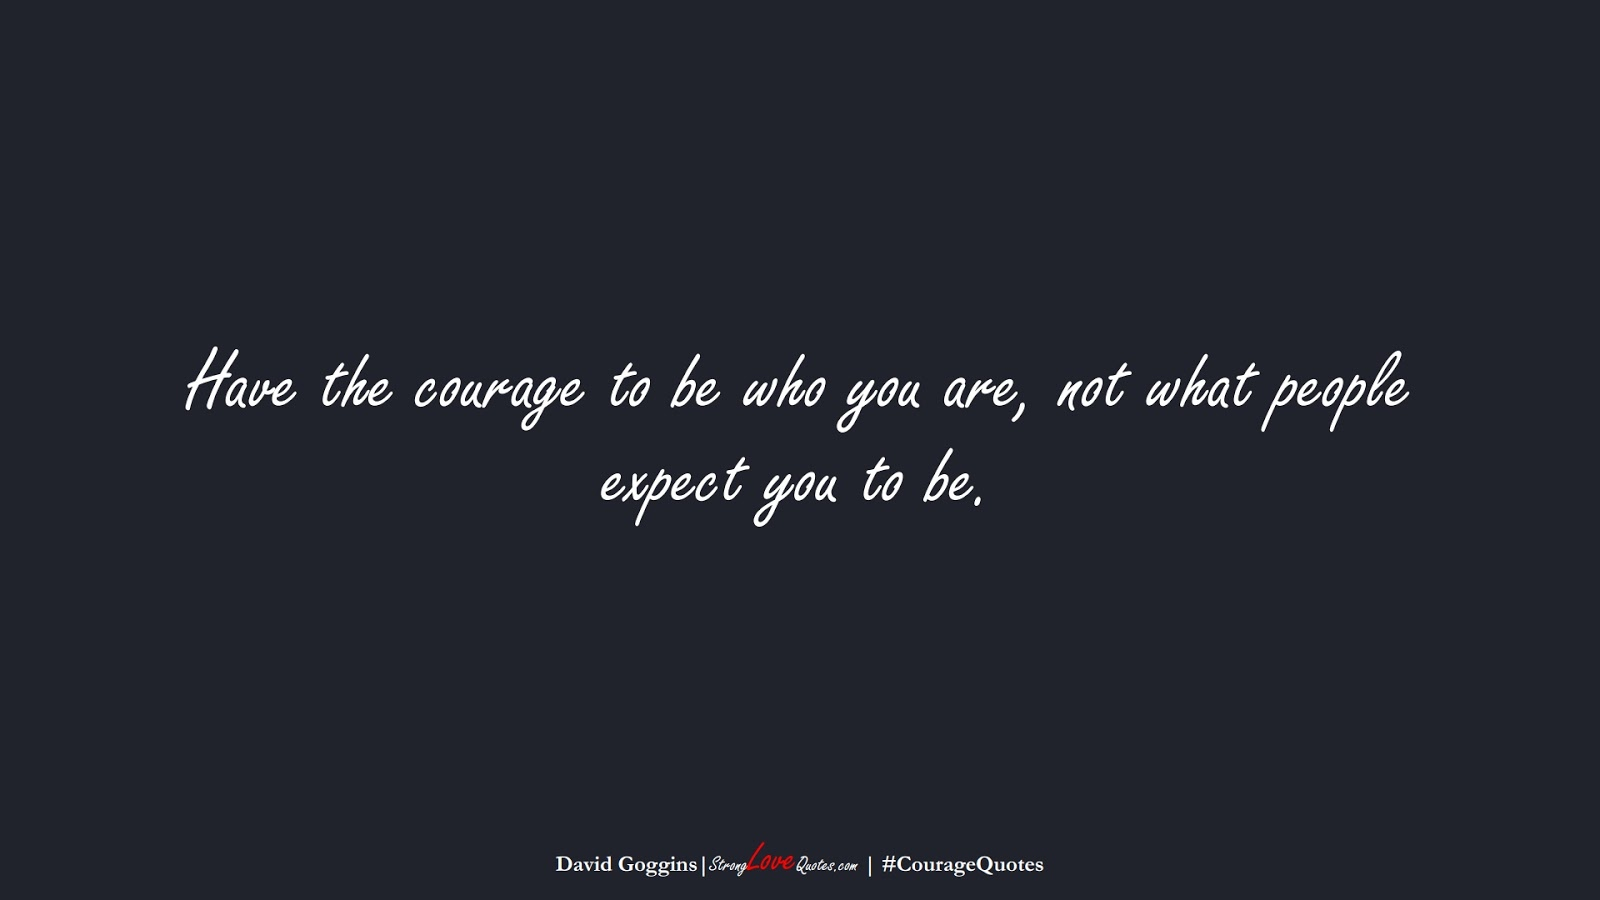 Have the courage to be who you are, not what people expect you to be. (David Goggins);  #CourageQuotes